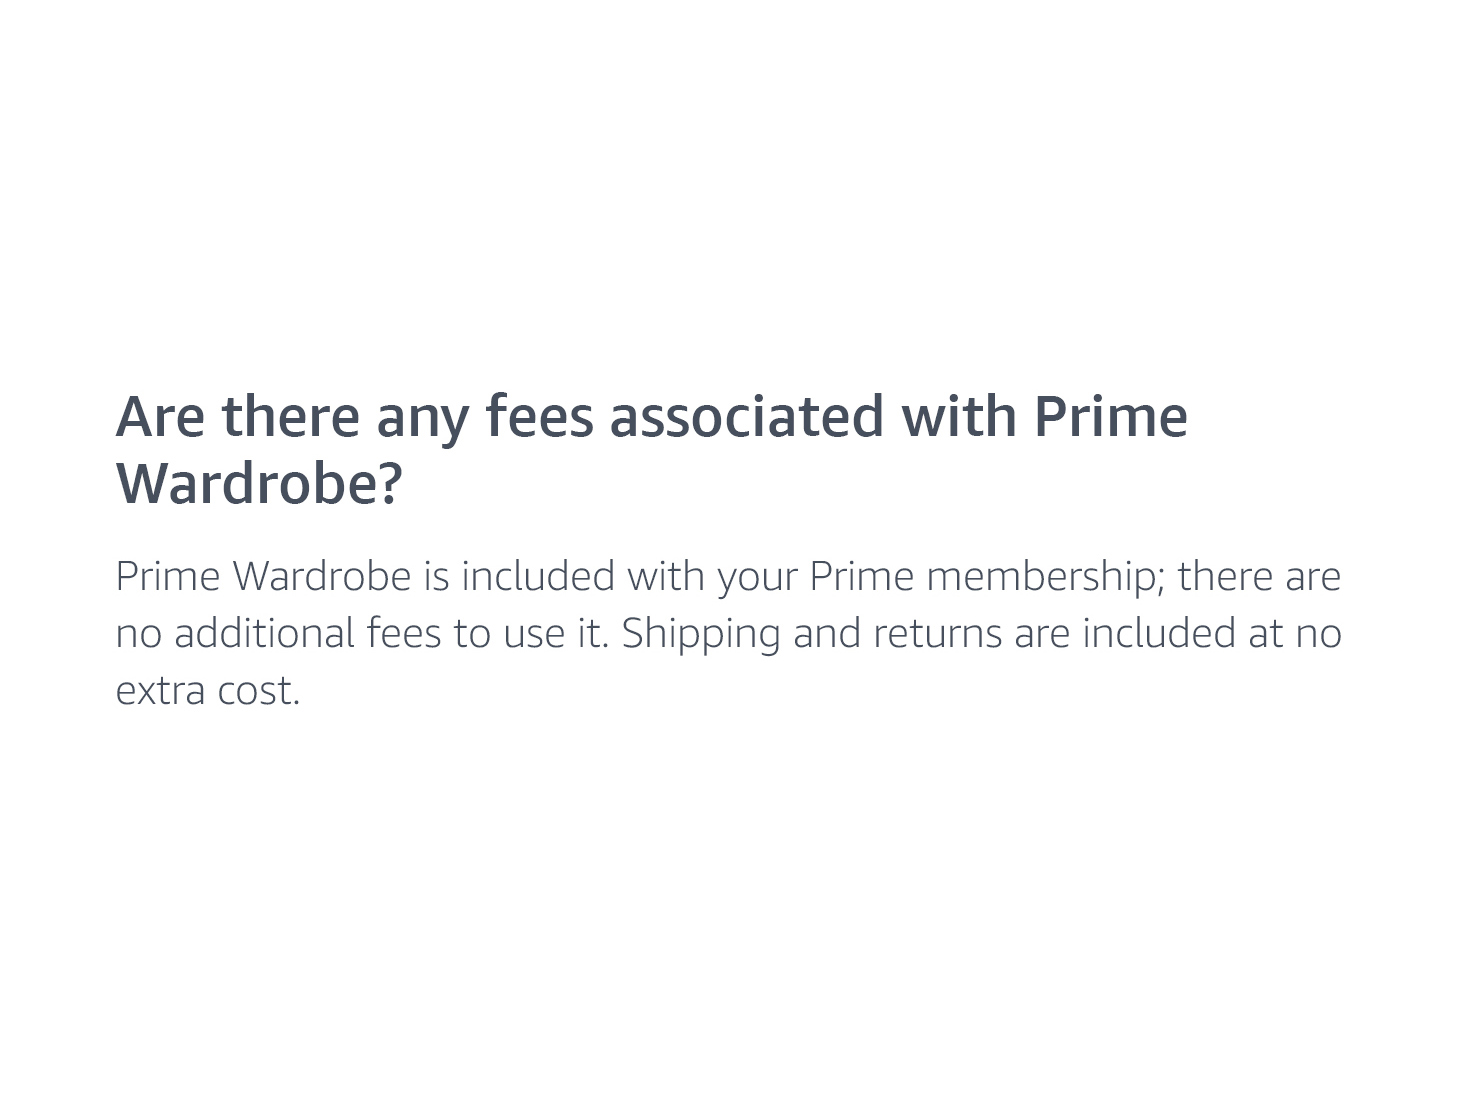 Are there any fees associated with Prime Wardrobe?